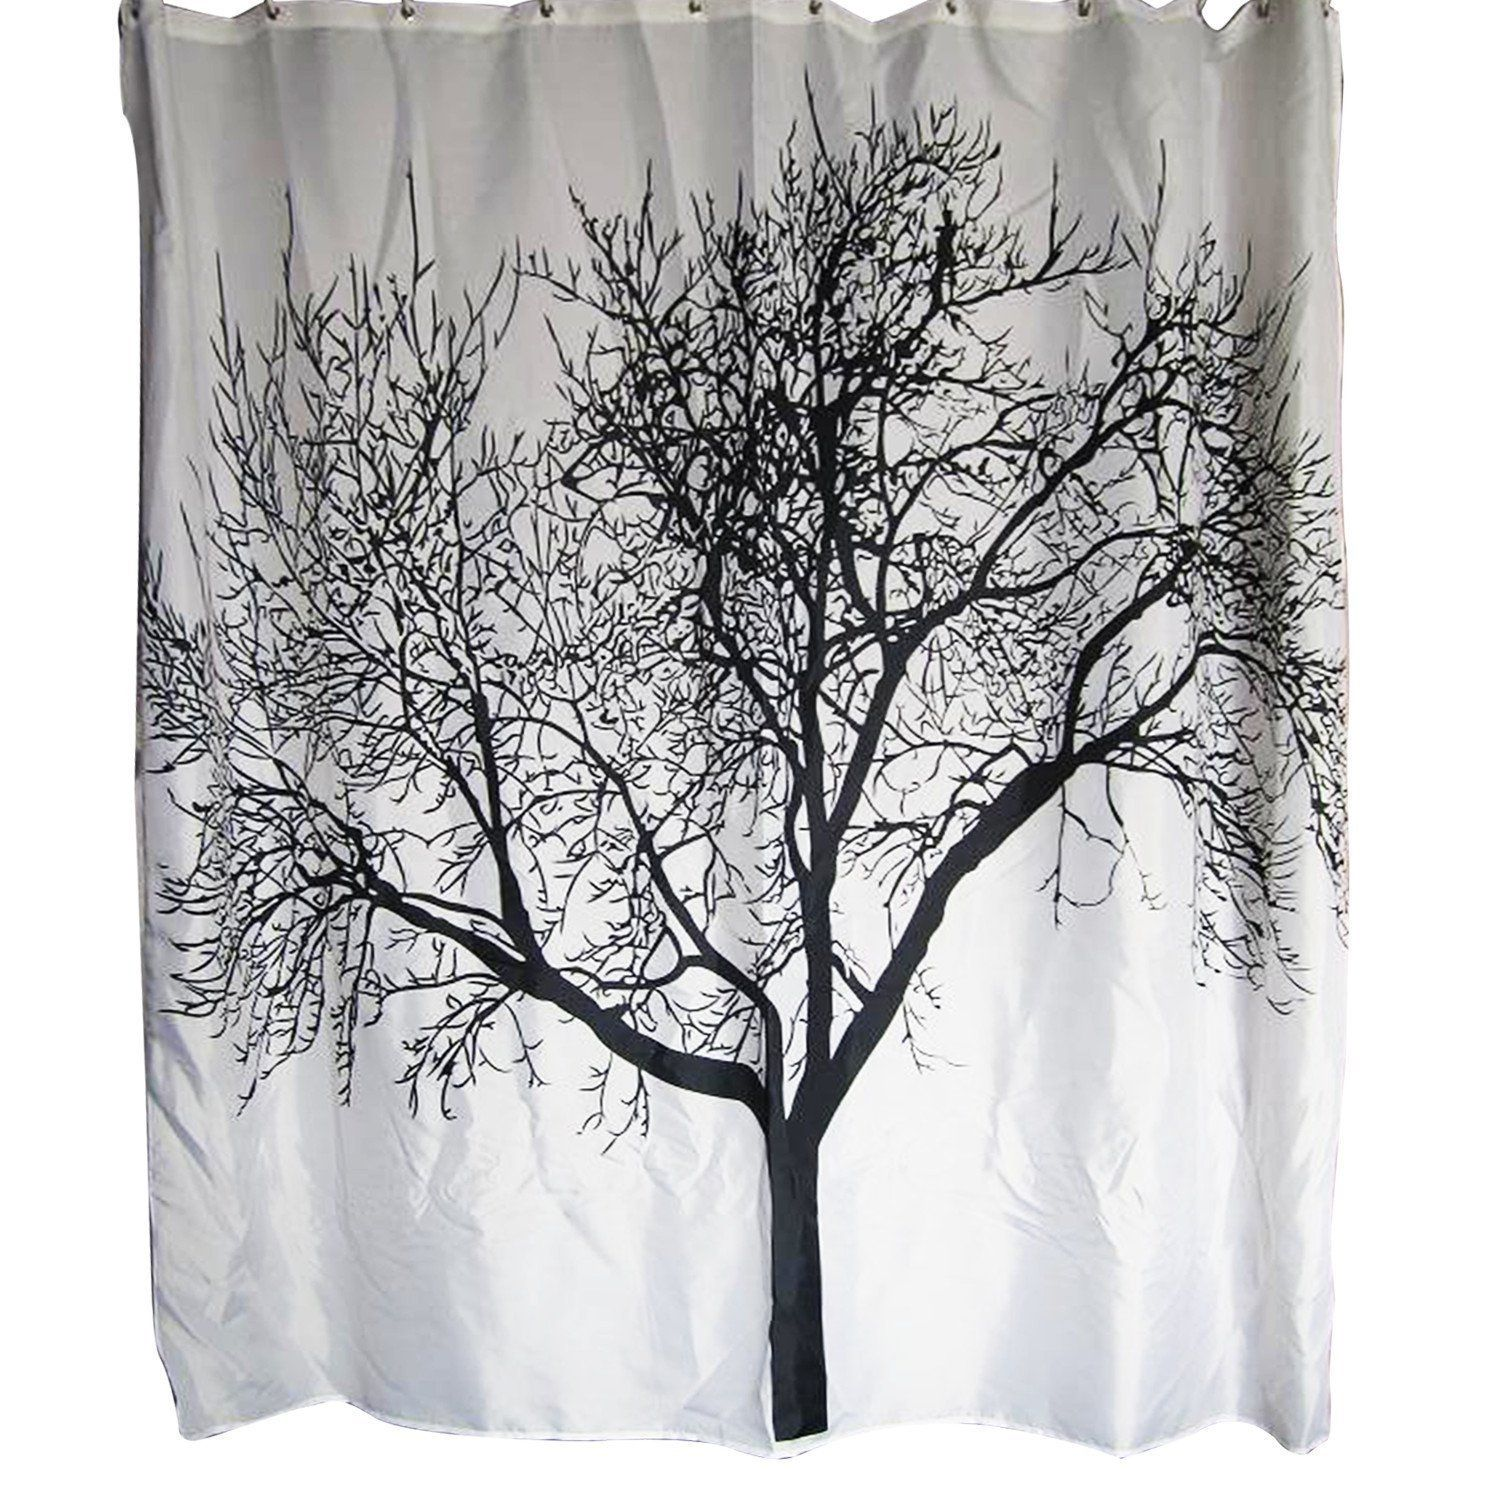 27ab5463e0c0624ebf80ef2445bc7b96 - Better Homes And Gardens Global Elephant Shower Curtain